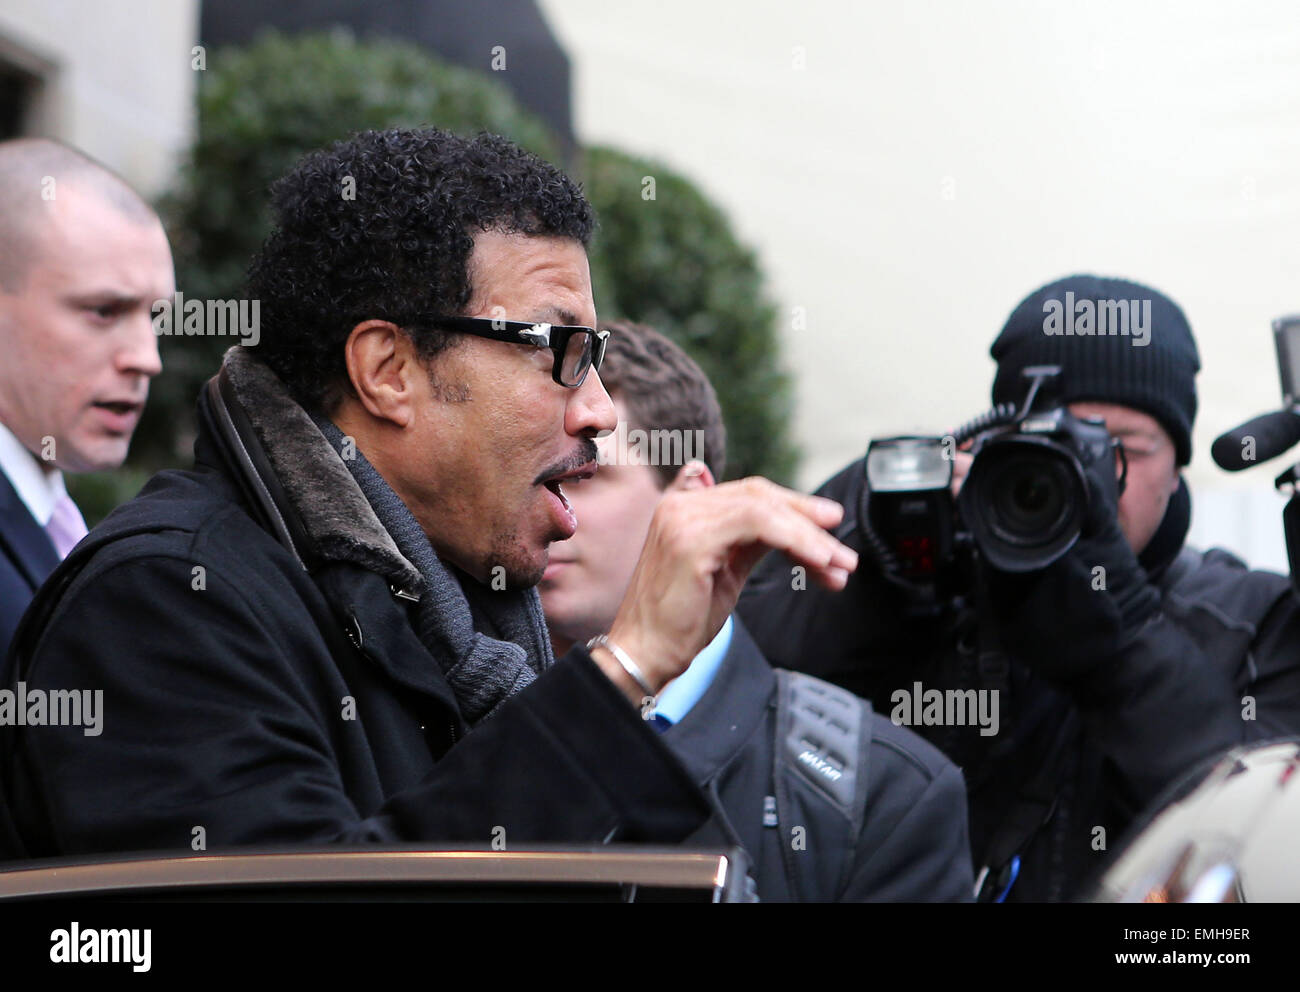 30.novembre.2012. PARIS LE CHANTEUR Lionel Richie est repéré EN LAISSANT LE FOUR SEASONS HOTEL GEORGE Photo Stock